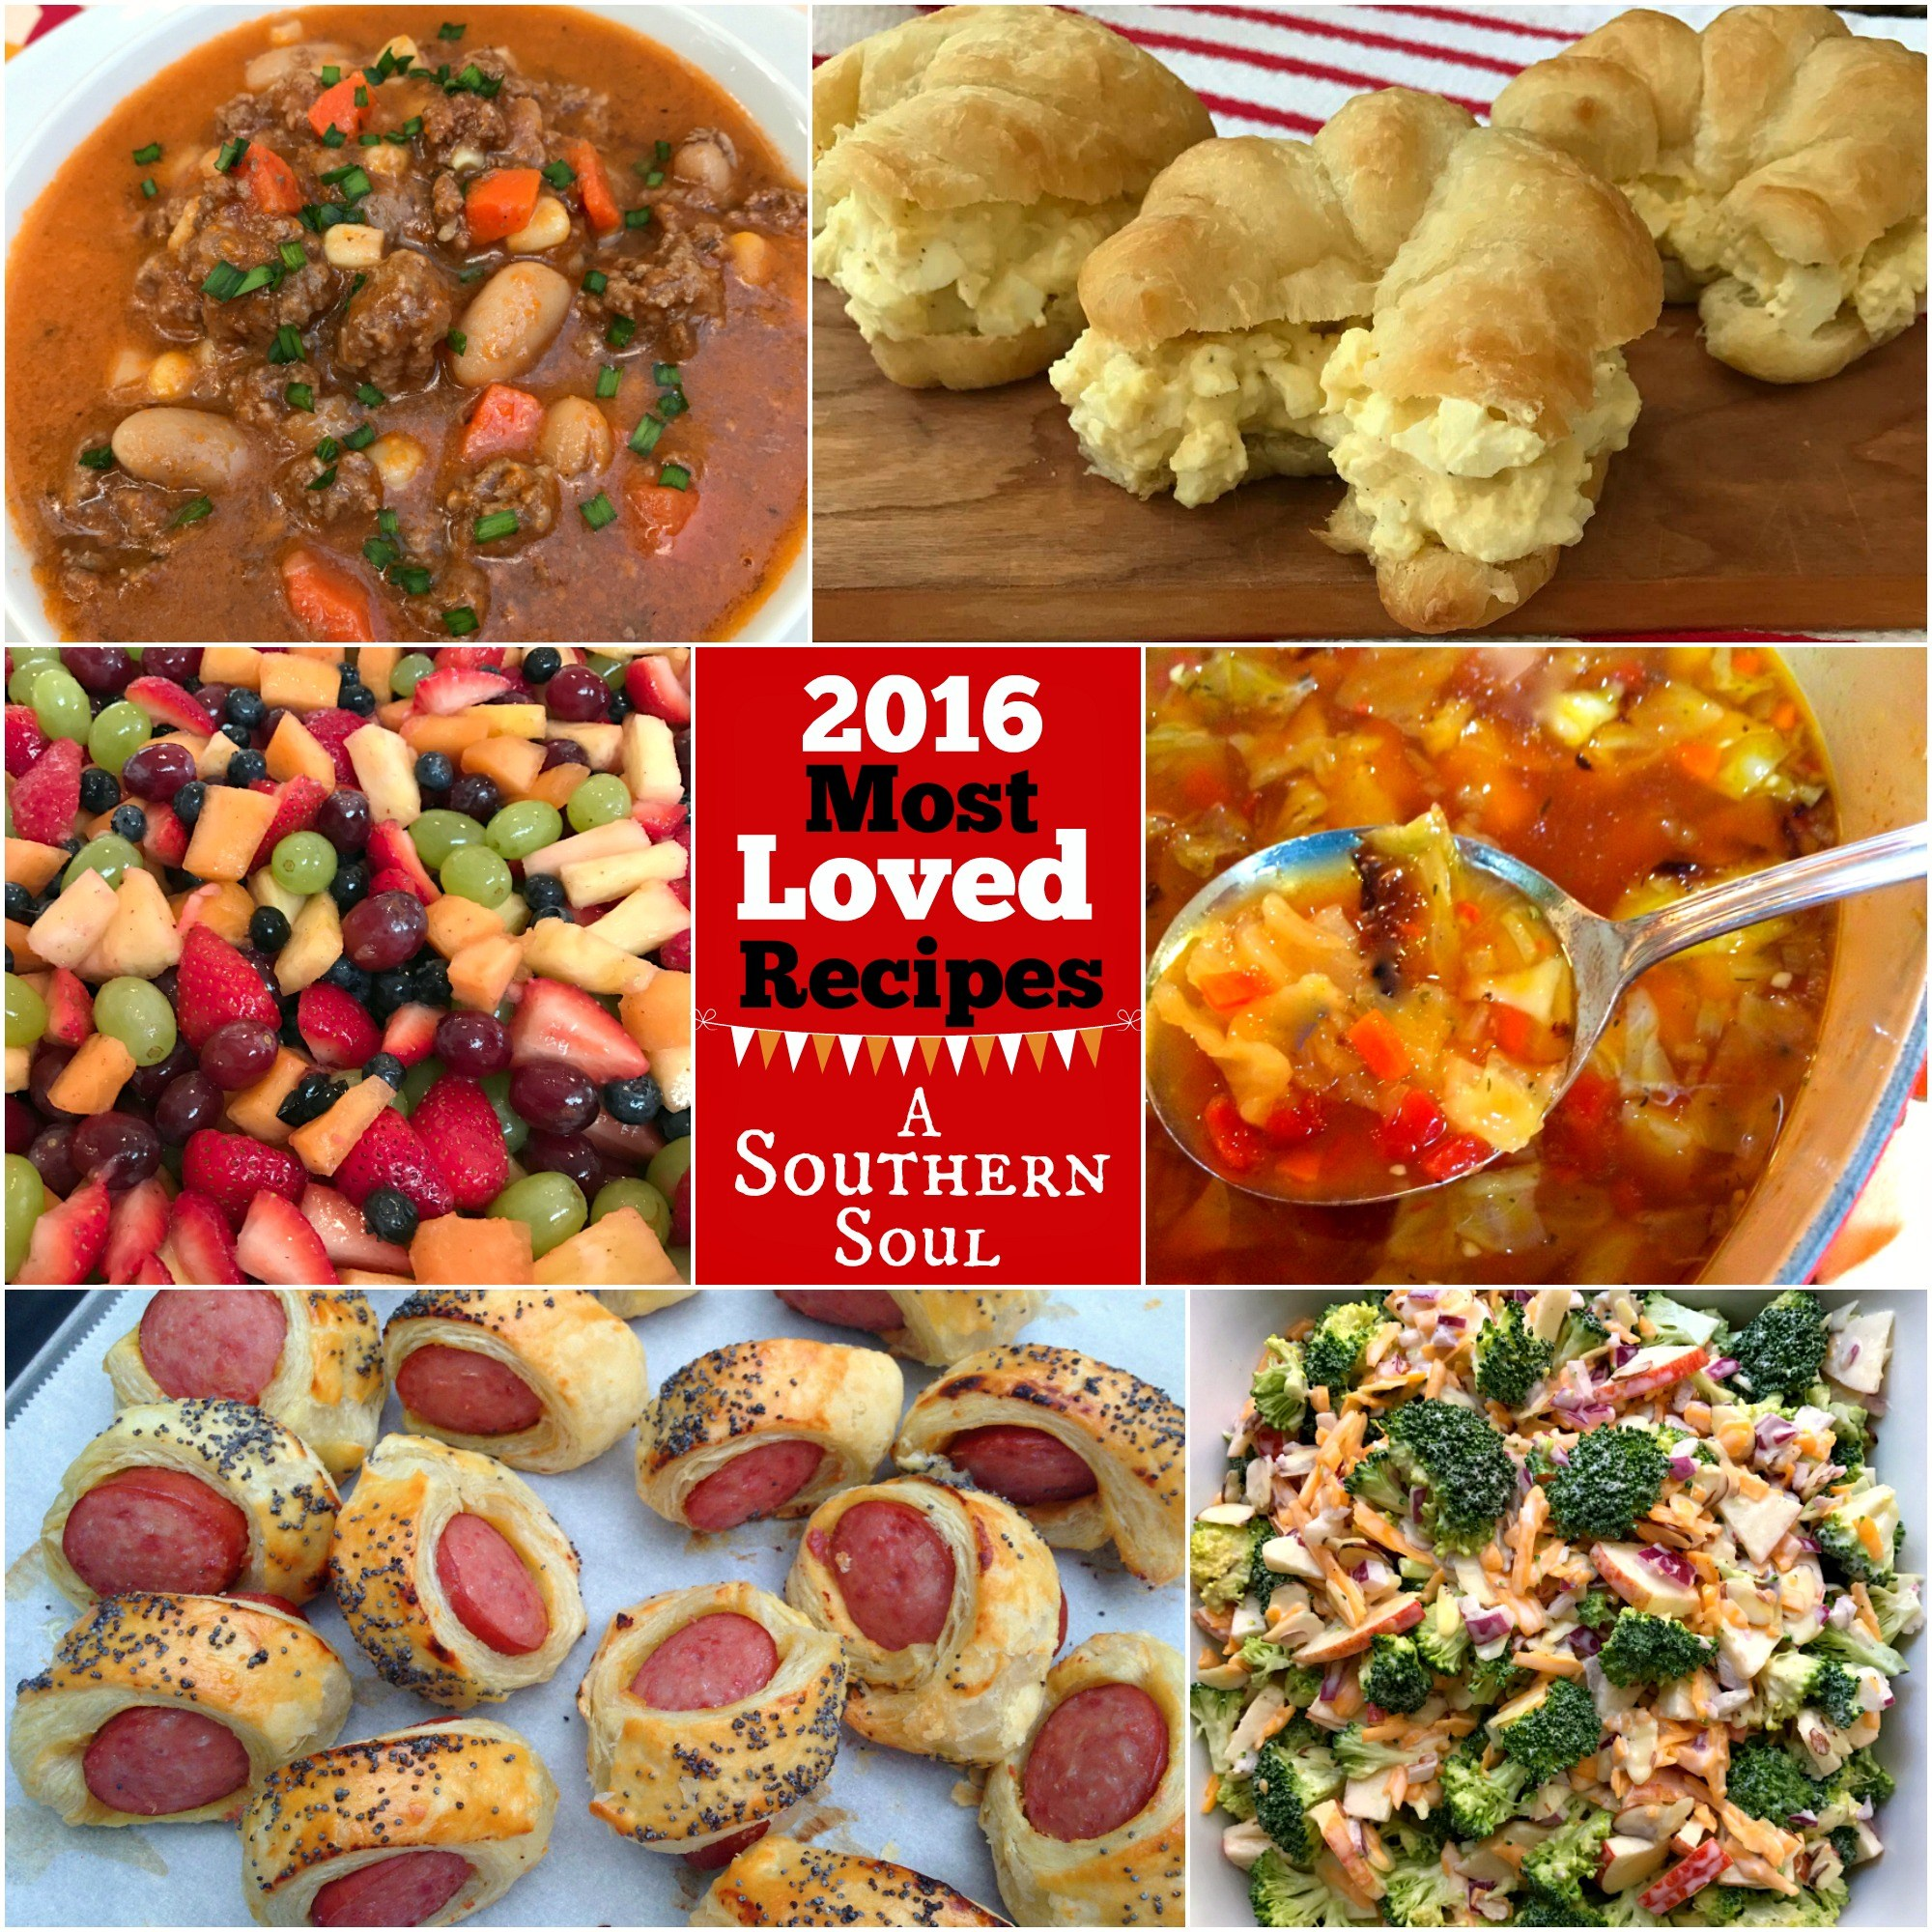 recipes from 2016